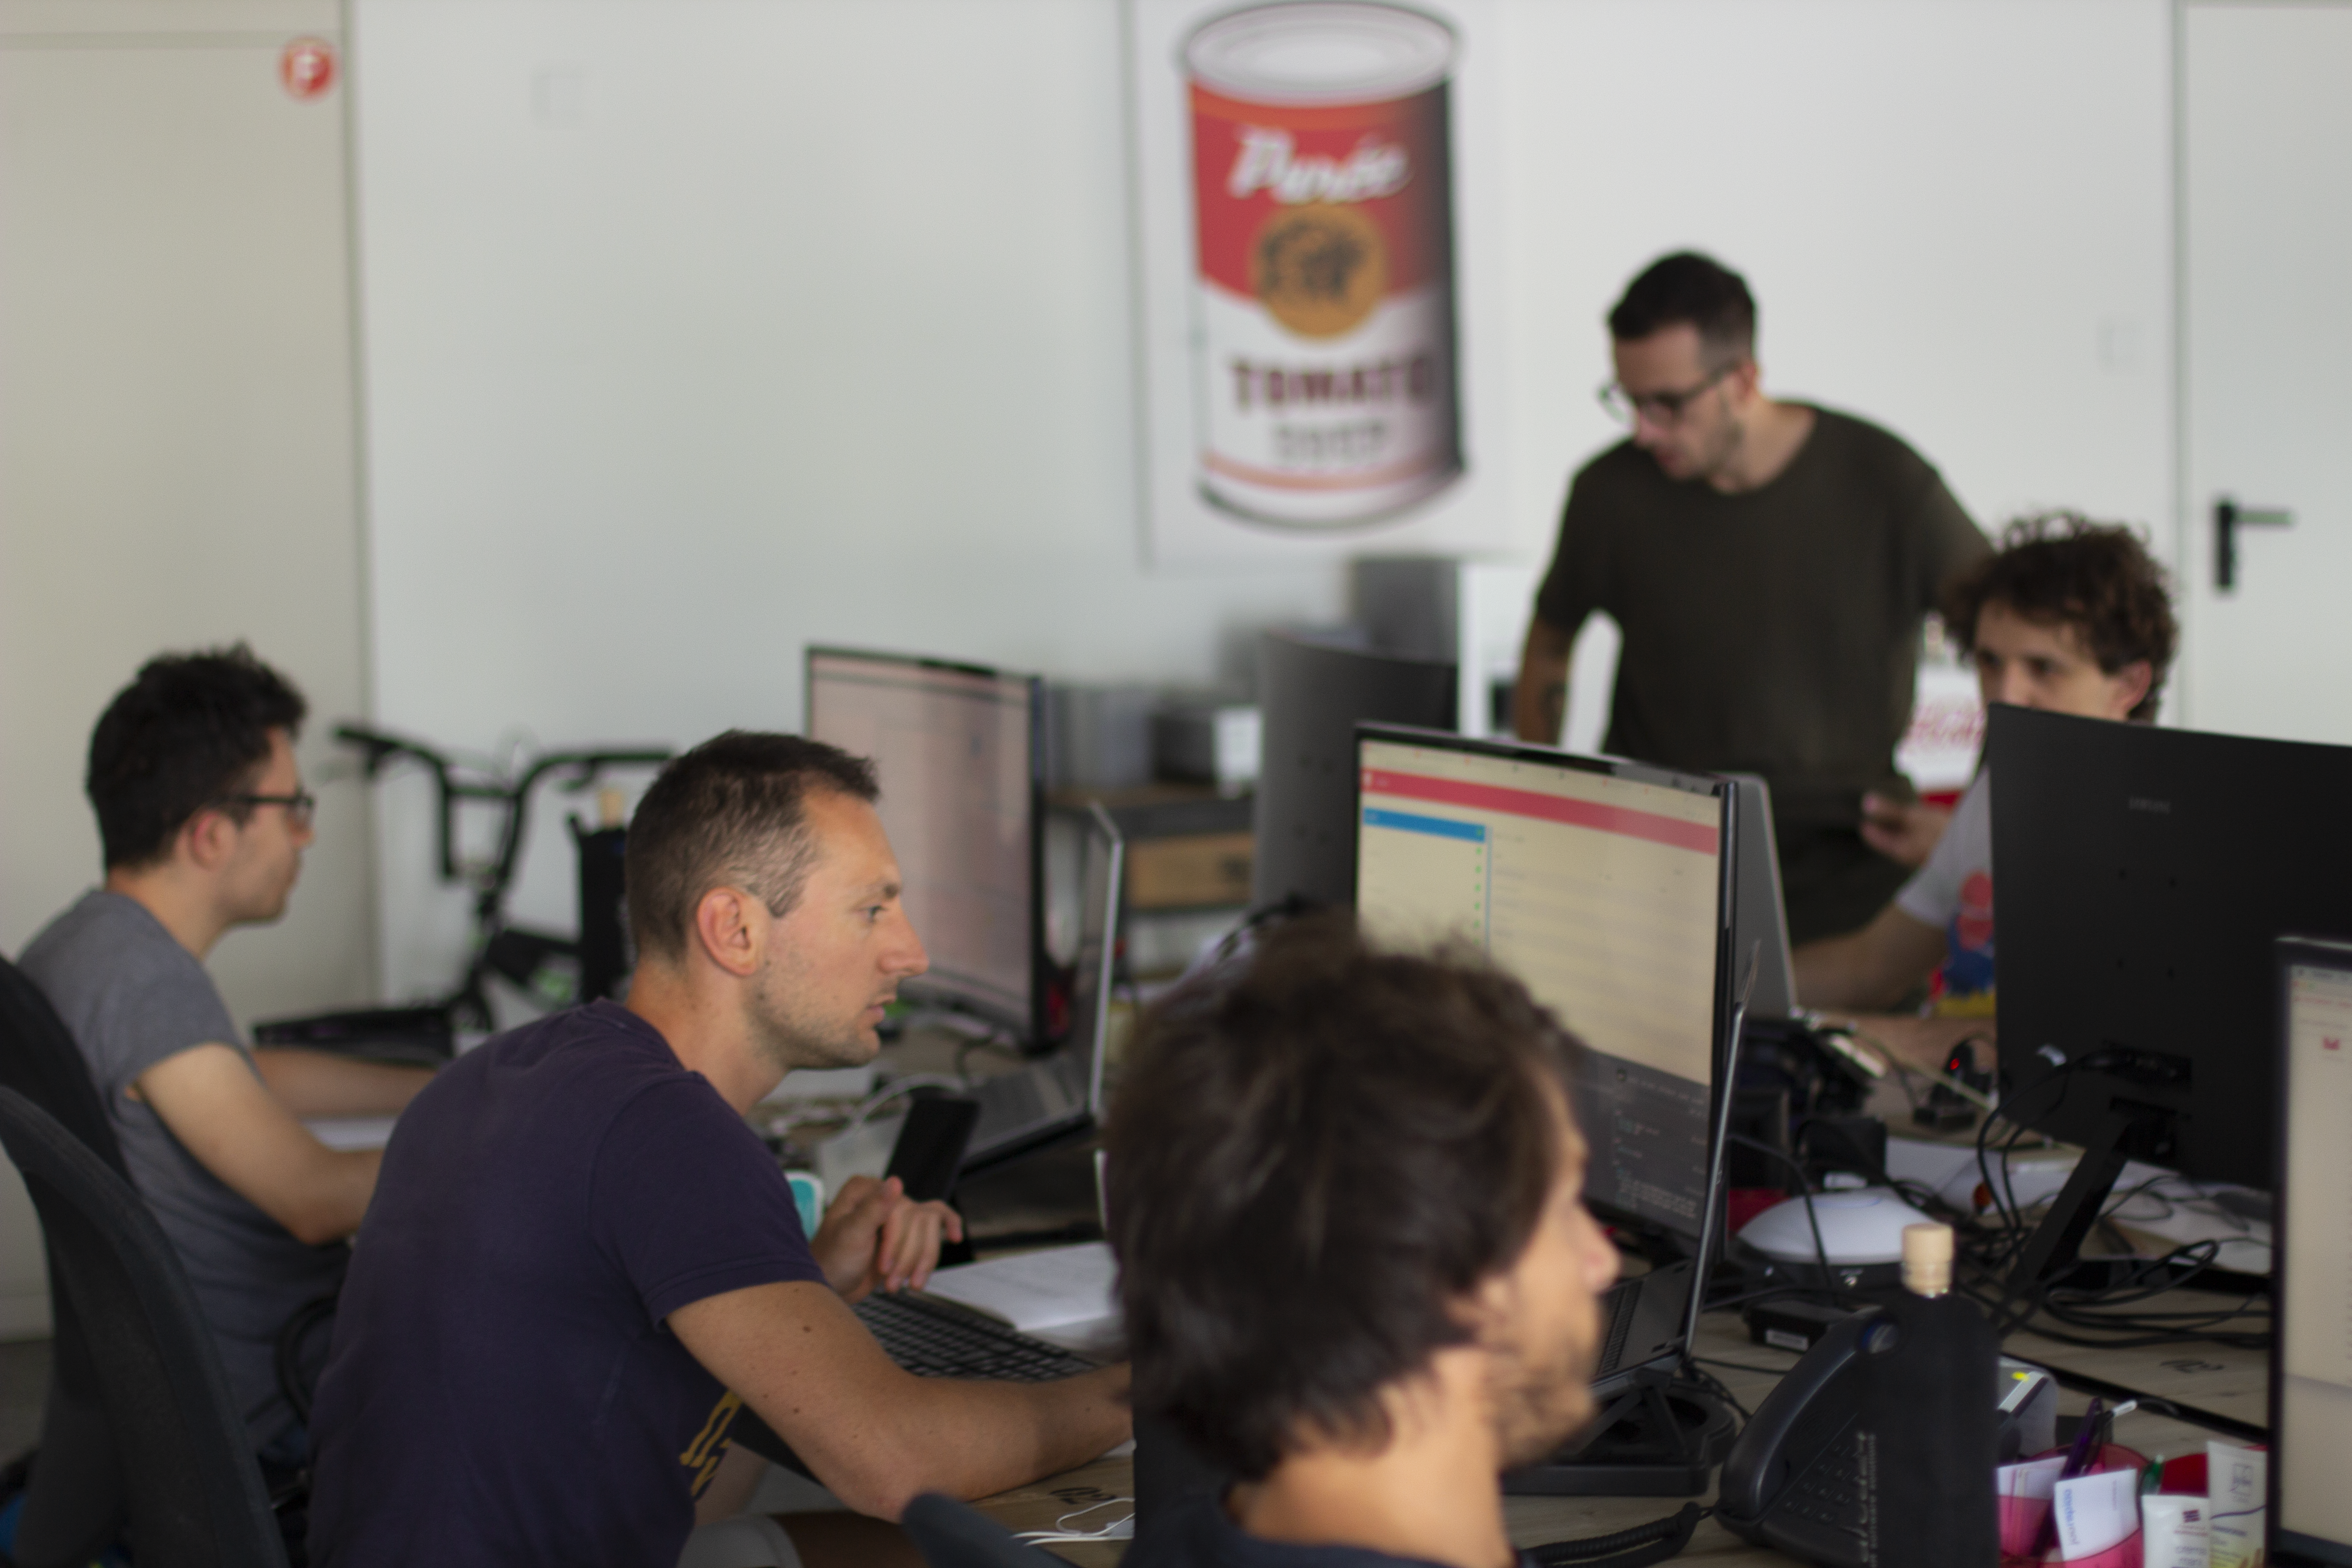 Arca24 has an operational offices and a team of developers